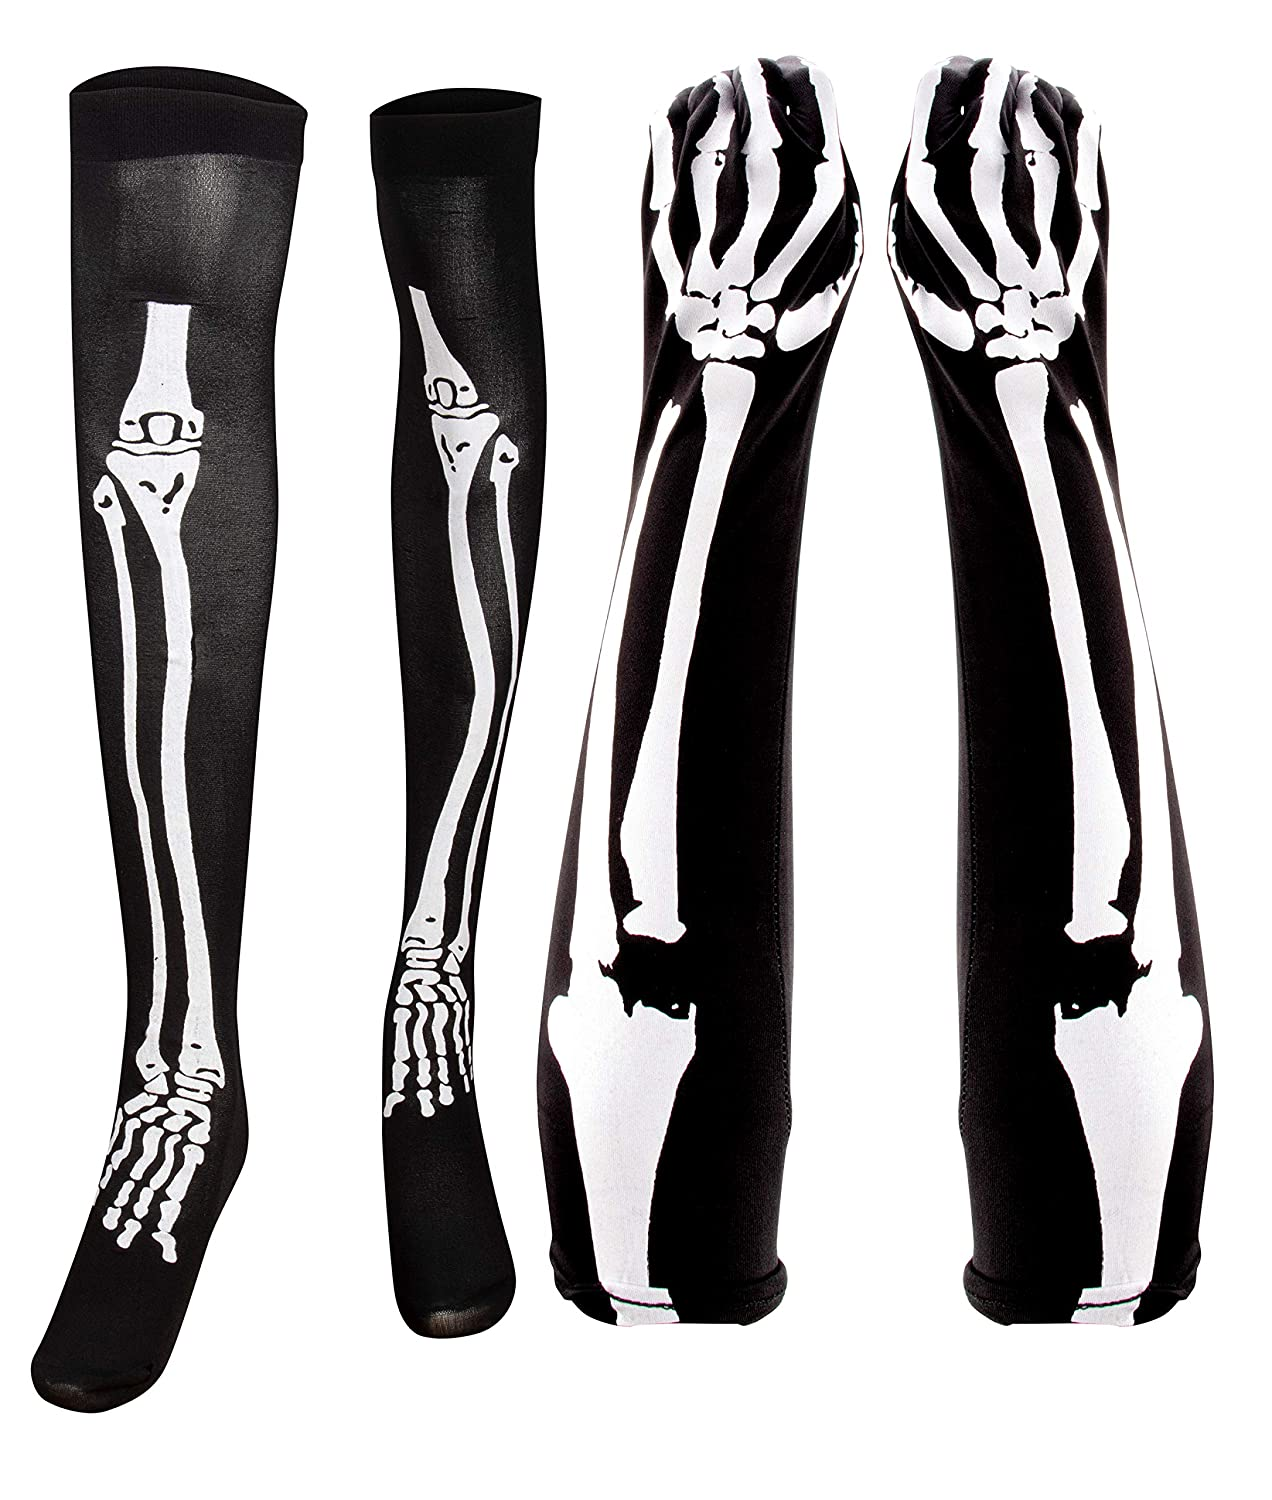 Blue Panda Halloween Skeleton Stocking Long Arm Gloves - Costume Cosplay Accessory Women, Teens Juvale